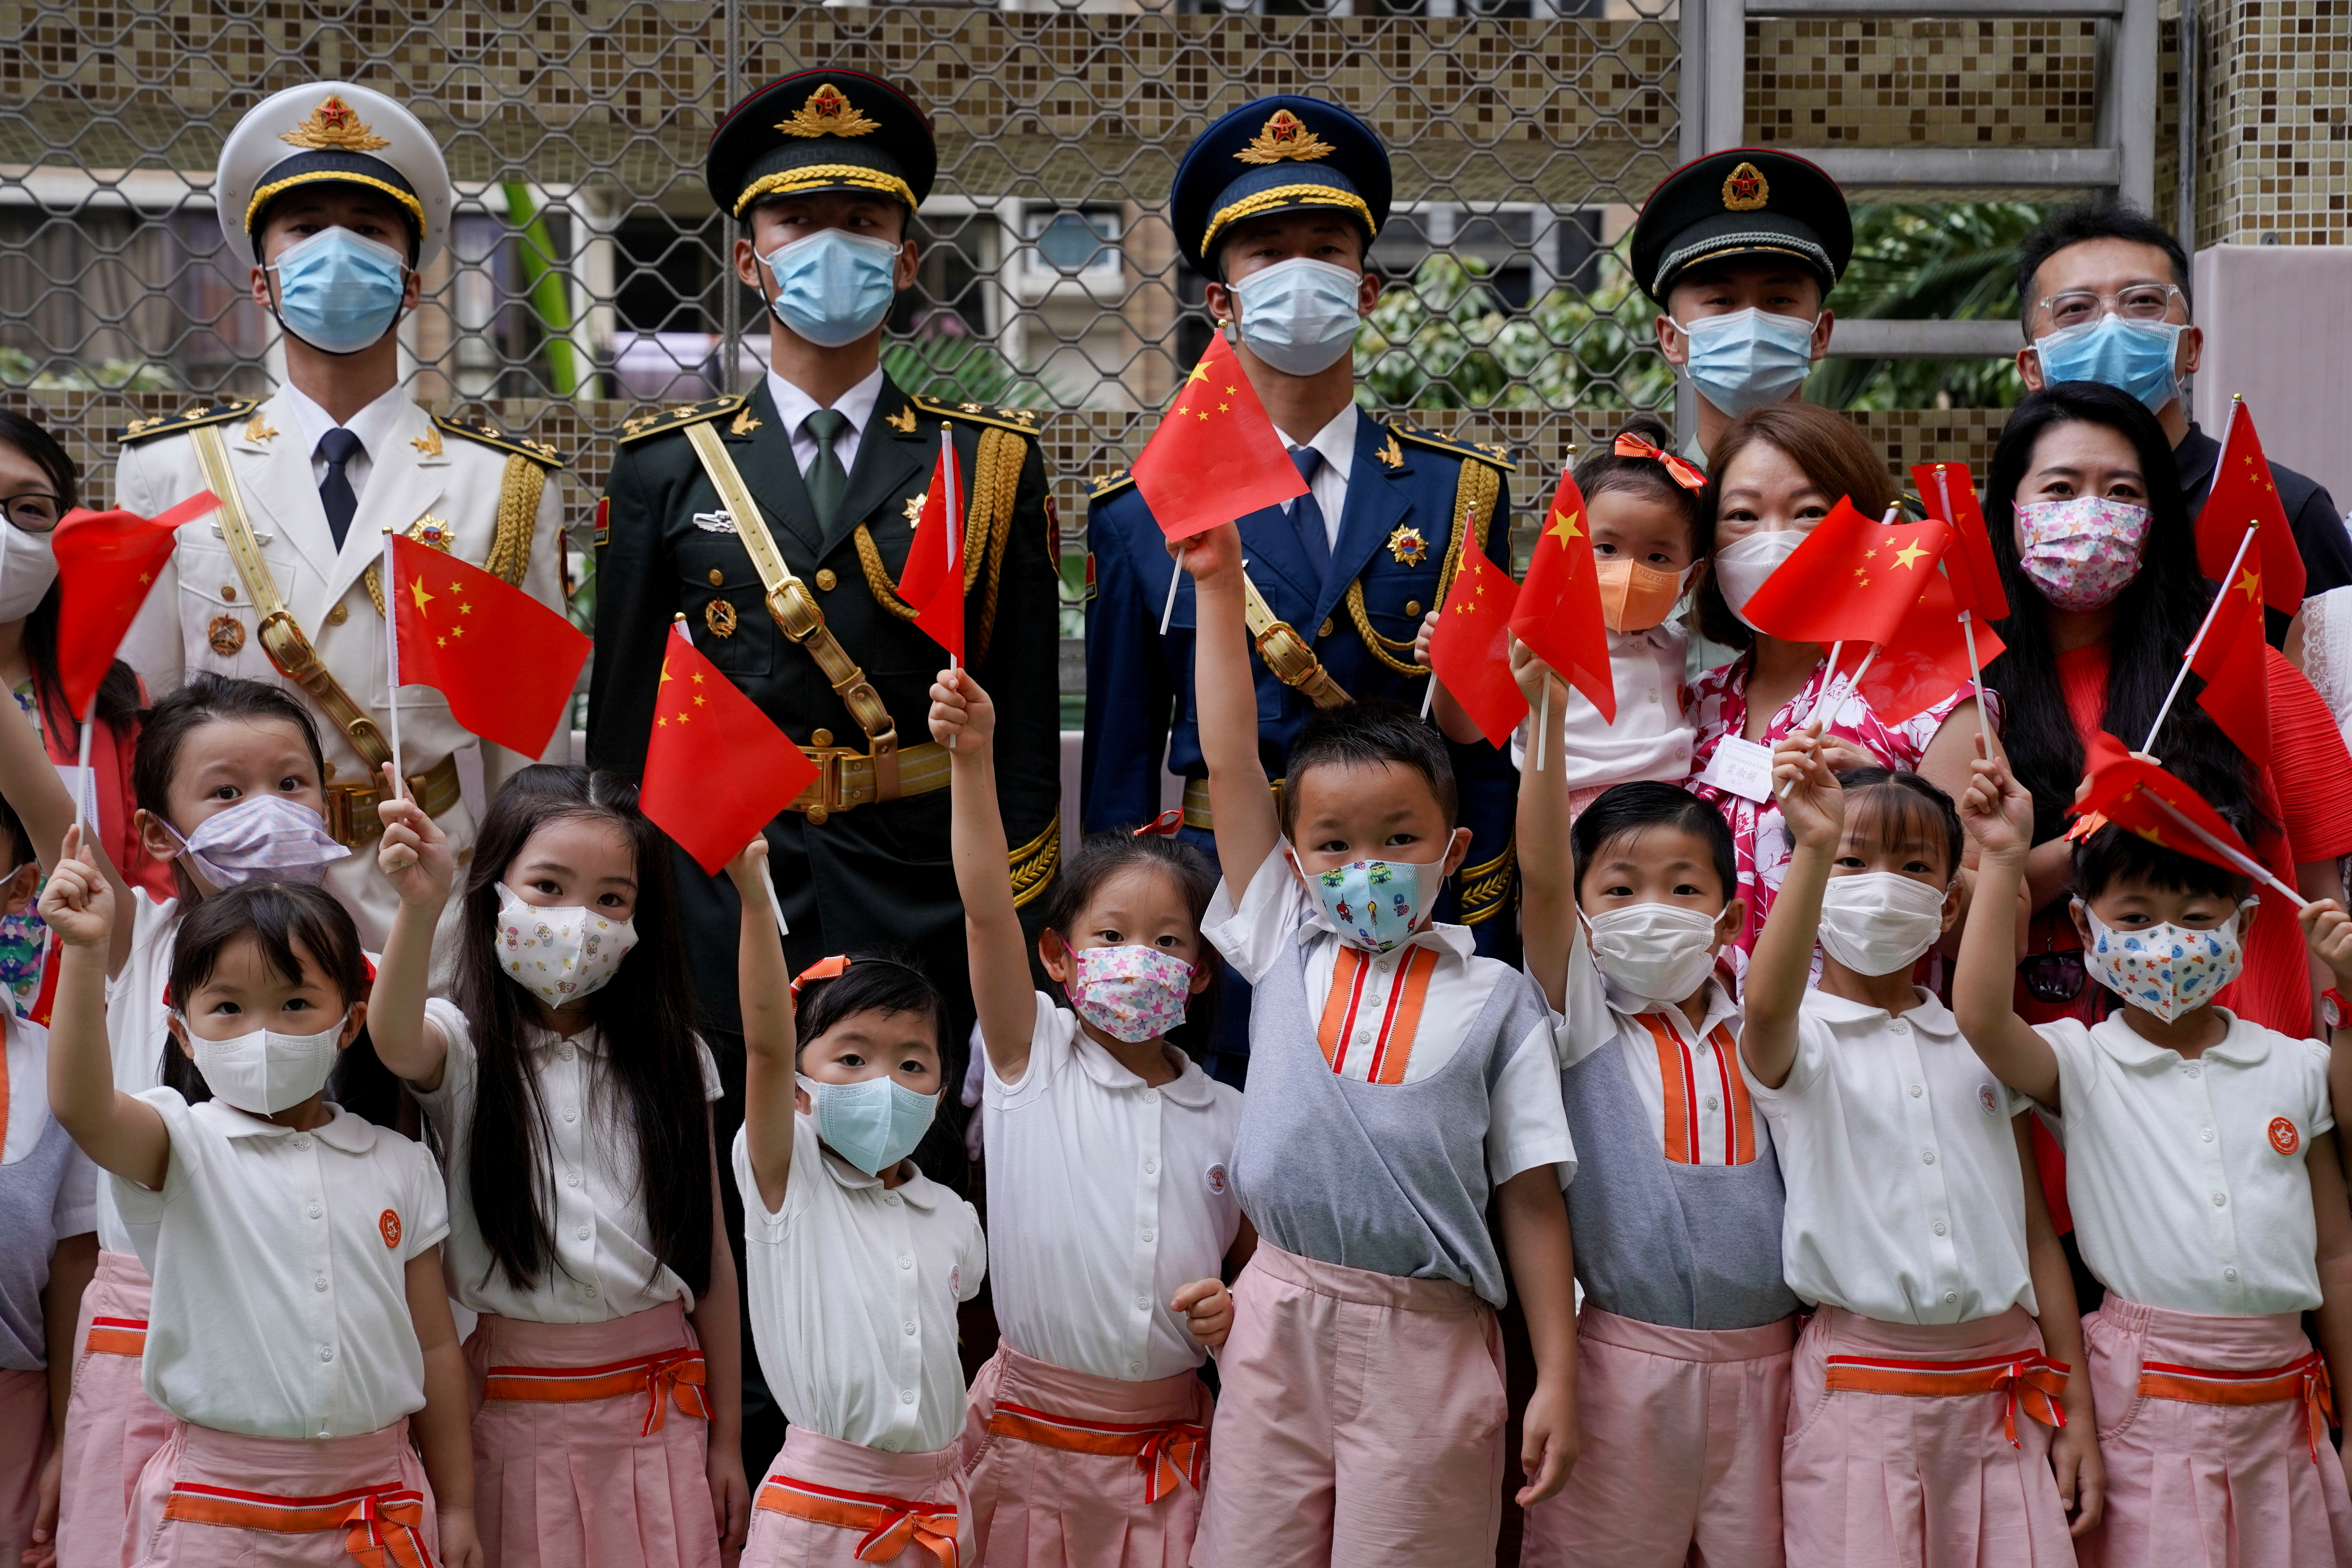 Students take a picture with the People's Liberation Army during morning assembly at a secondary school, marking the 24th anniversary of the former British colony's return to Chinese rule, on the 100th founding anniversary of the Communist Party of China, in Hong Kong, China July 1, 2021. REUTERS/Lam Yik